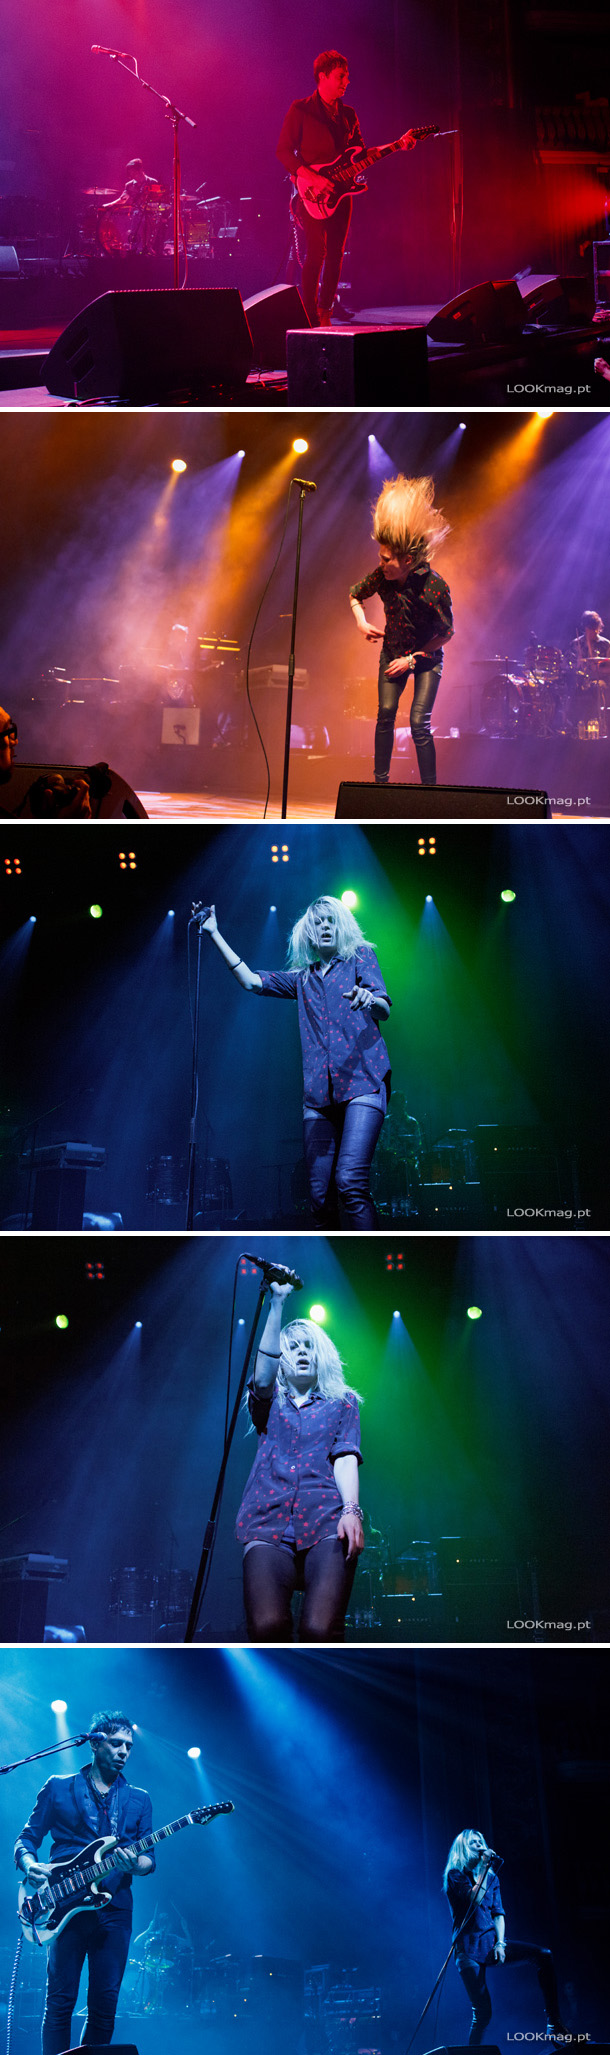 the_kills-lookmag_pt-21_25